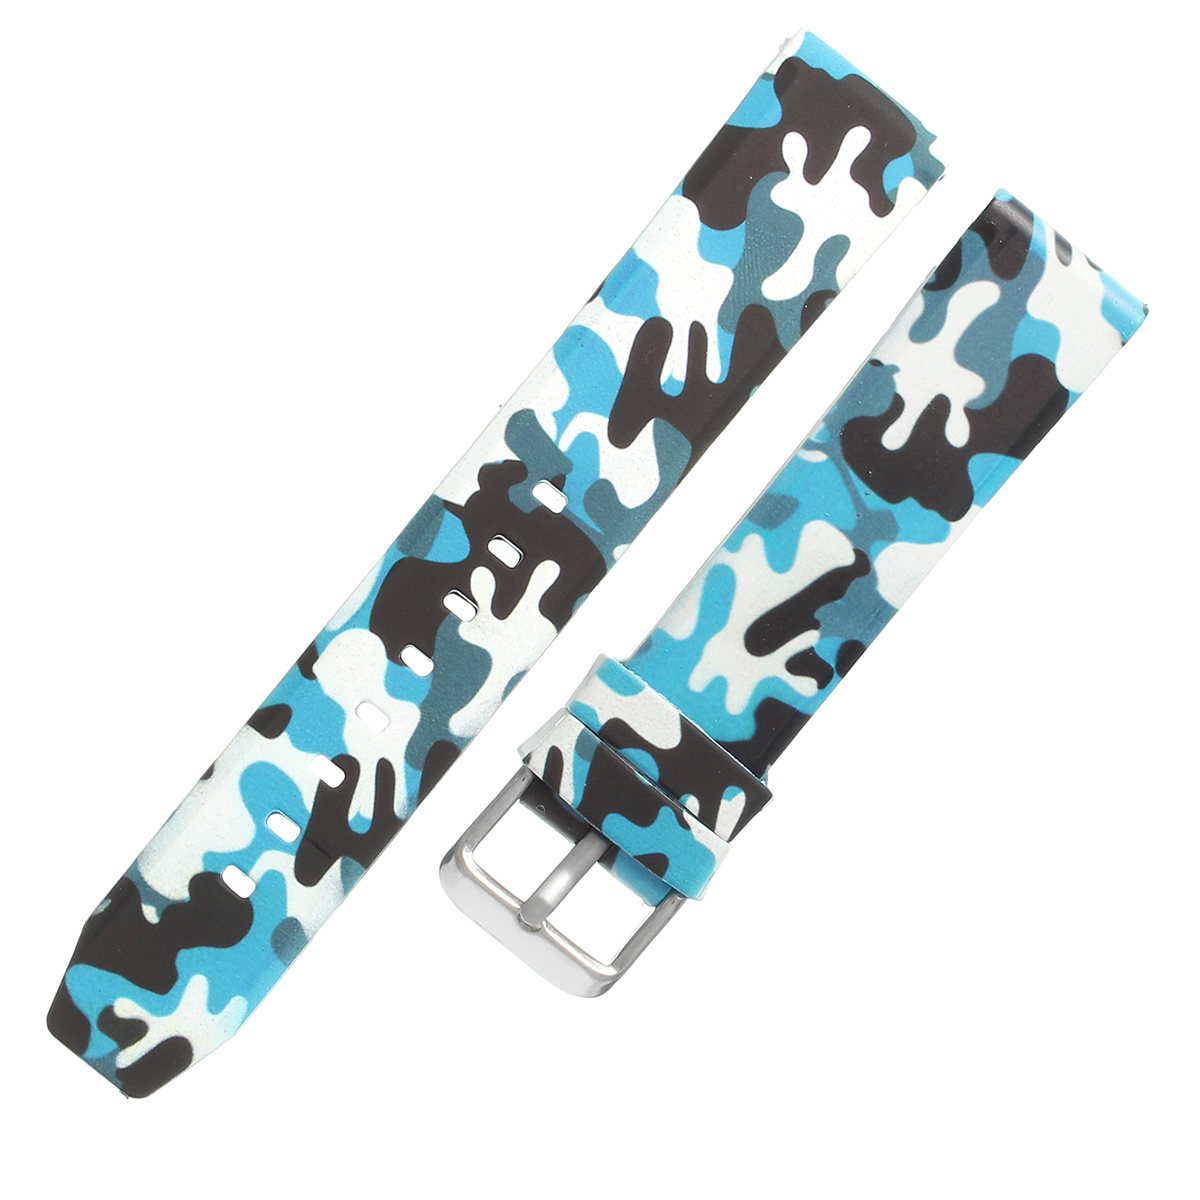 20mm/22mm Replacement Fashion Military Army Camo Watch Band Sports Silicone Rubber Strap